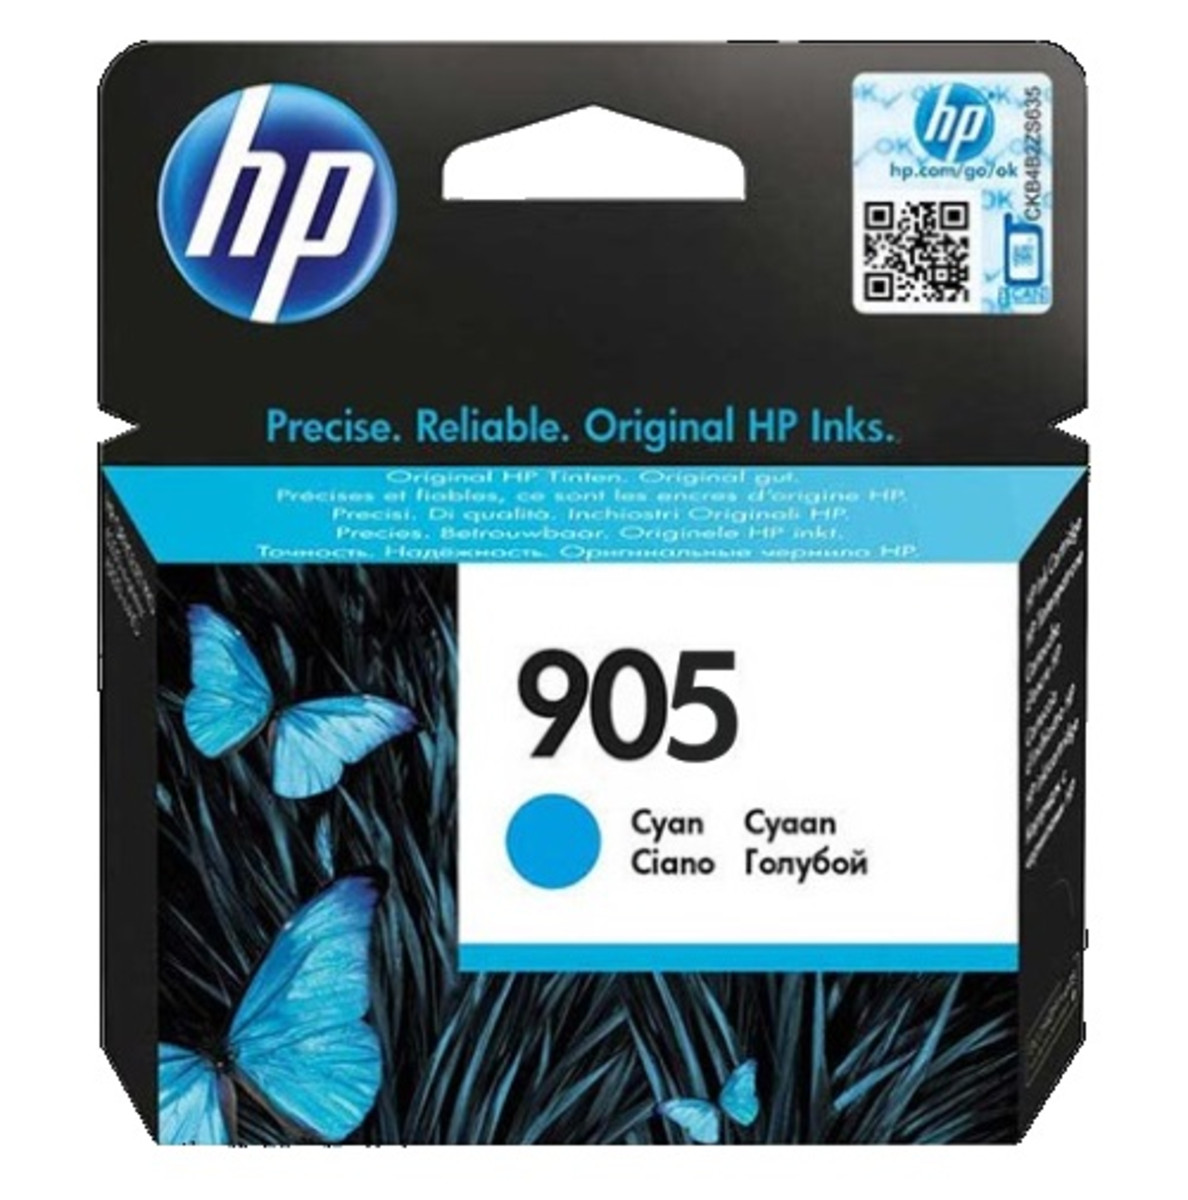 HP 905 (T6L89AA) Cyan Ink Cartridge